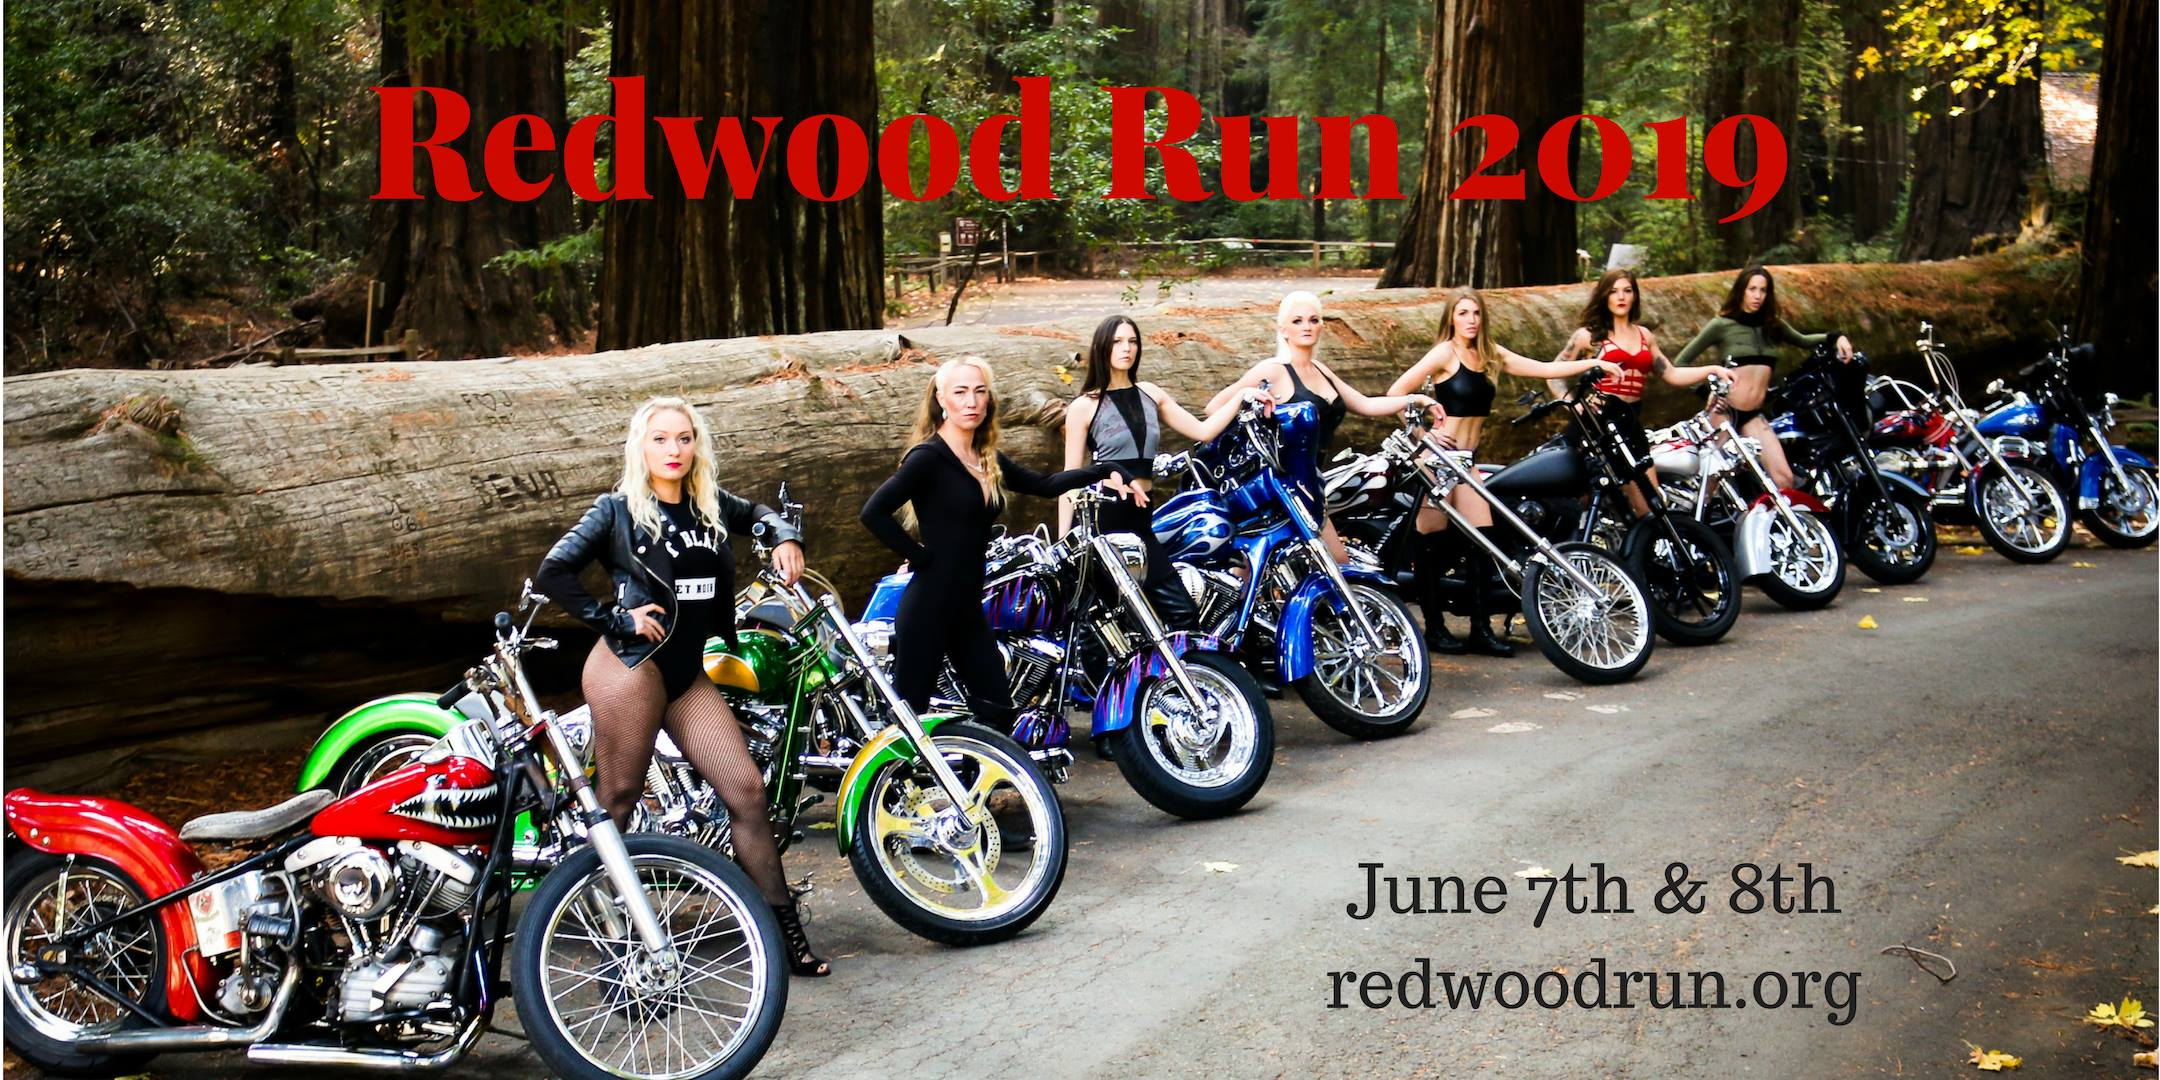 Redwood Run - June 7-8, 2019